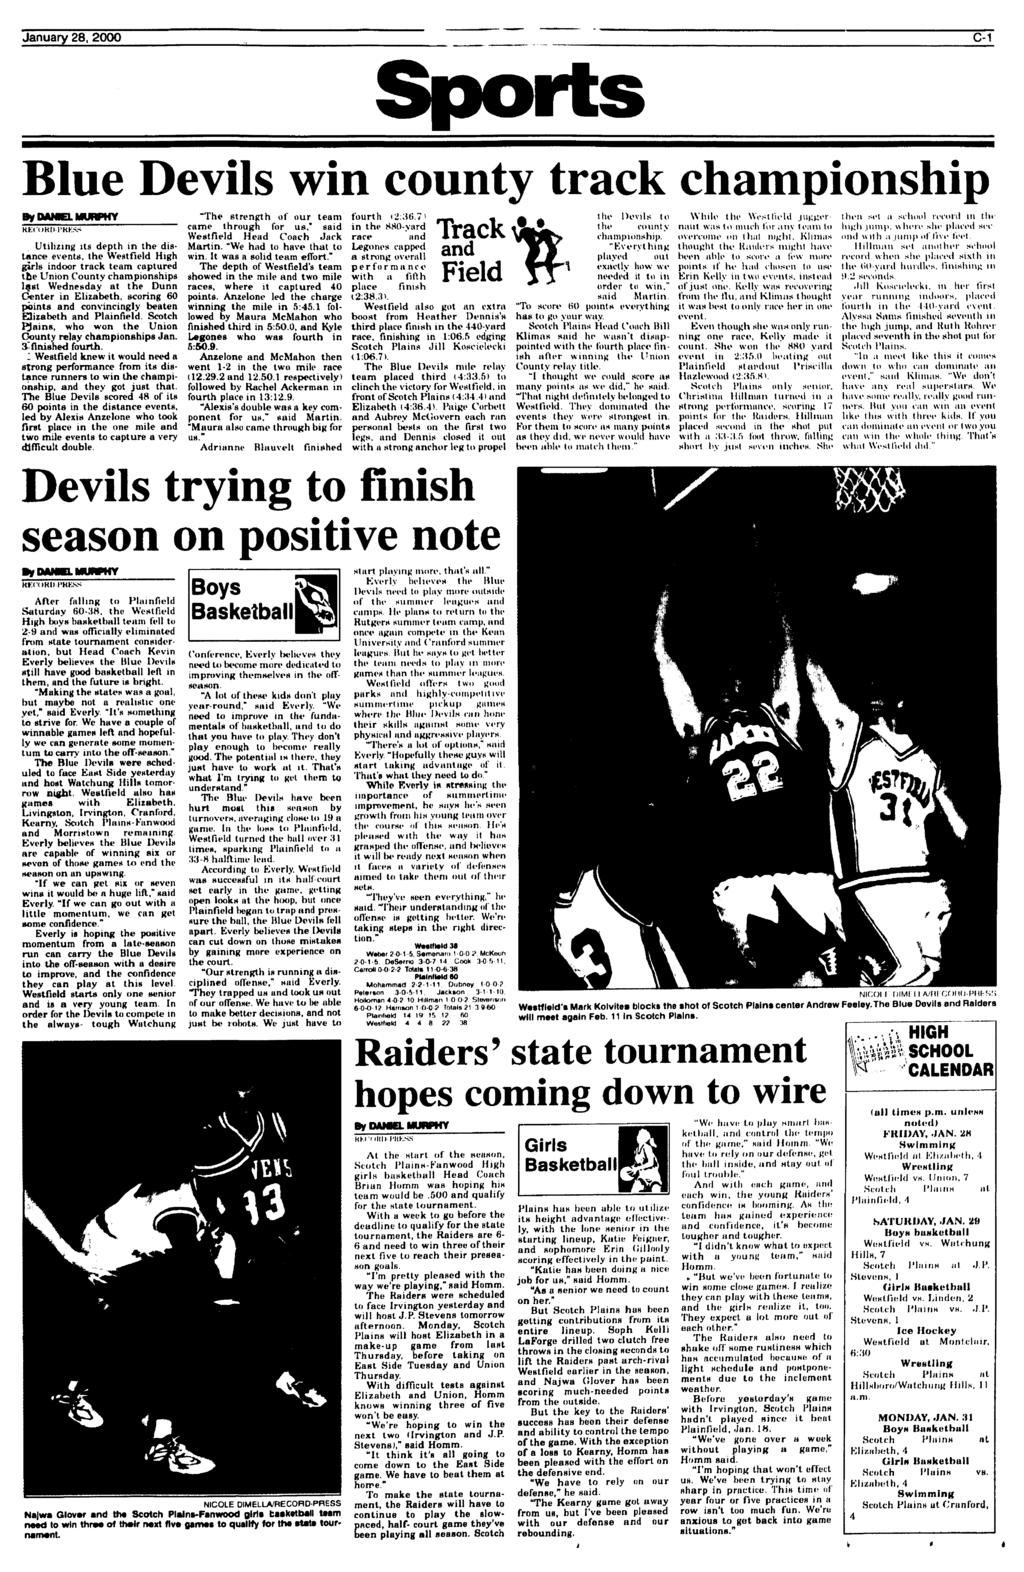 January 28, 2000 C-1 Sports Blue Devils win county track championship  Utilizing its